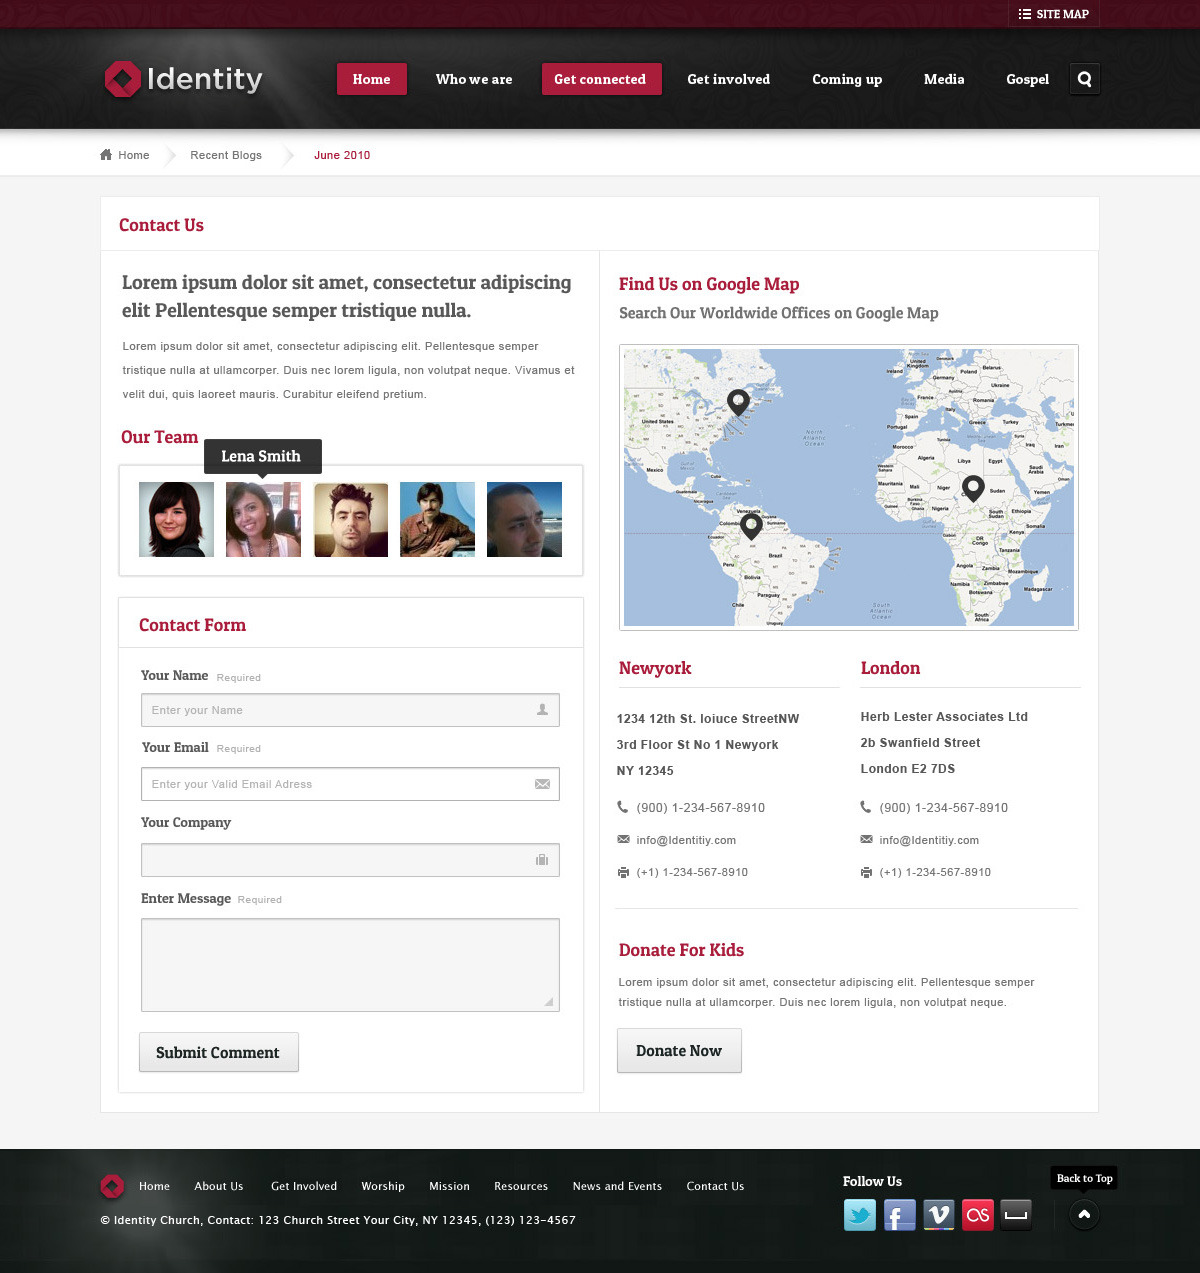 Identity Church and NGO Template